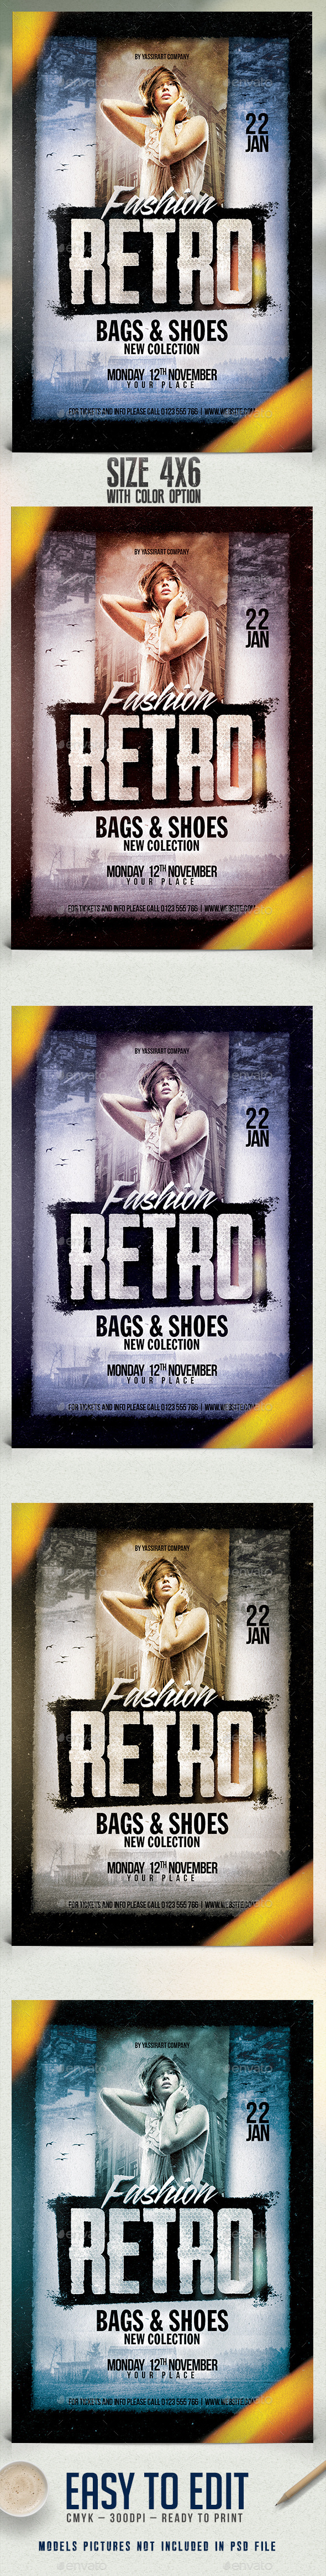 Fashion Retro Flyer Template - Clubs & Parties Events